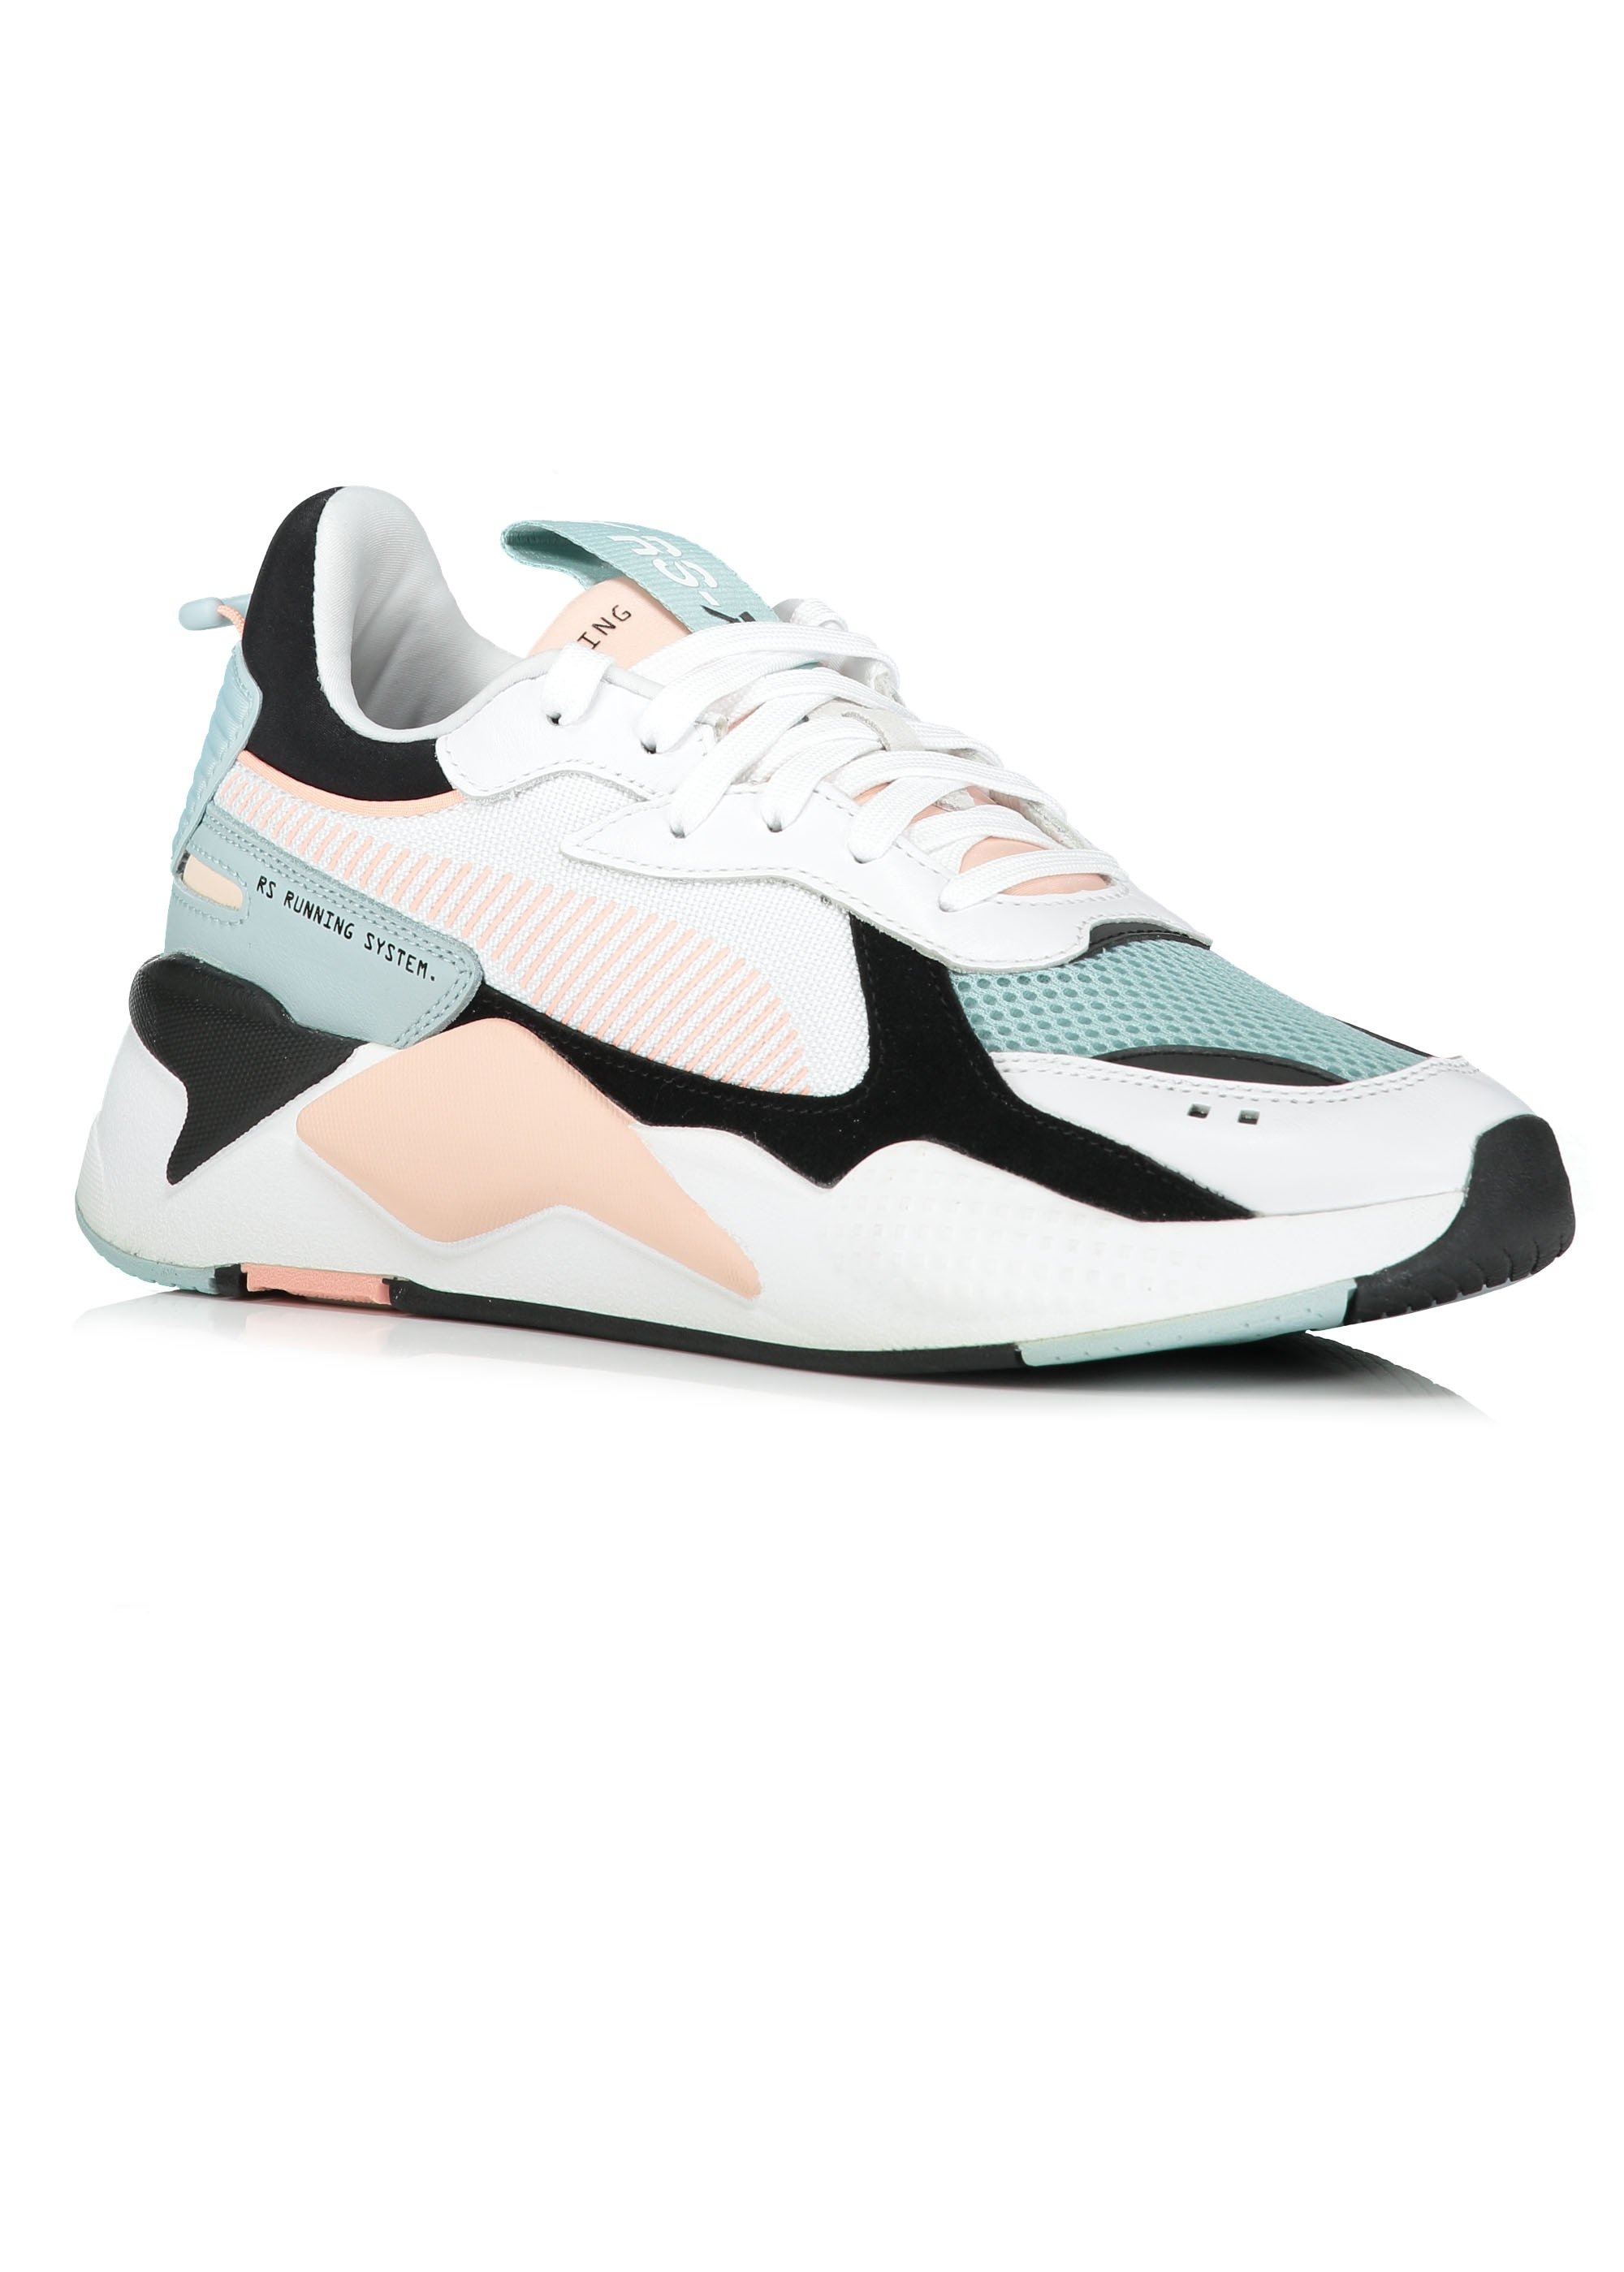 933729e98a Puma RS-X Reinvention - White / Peach